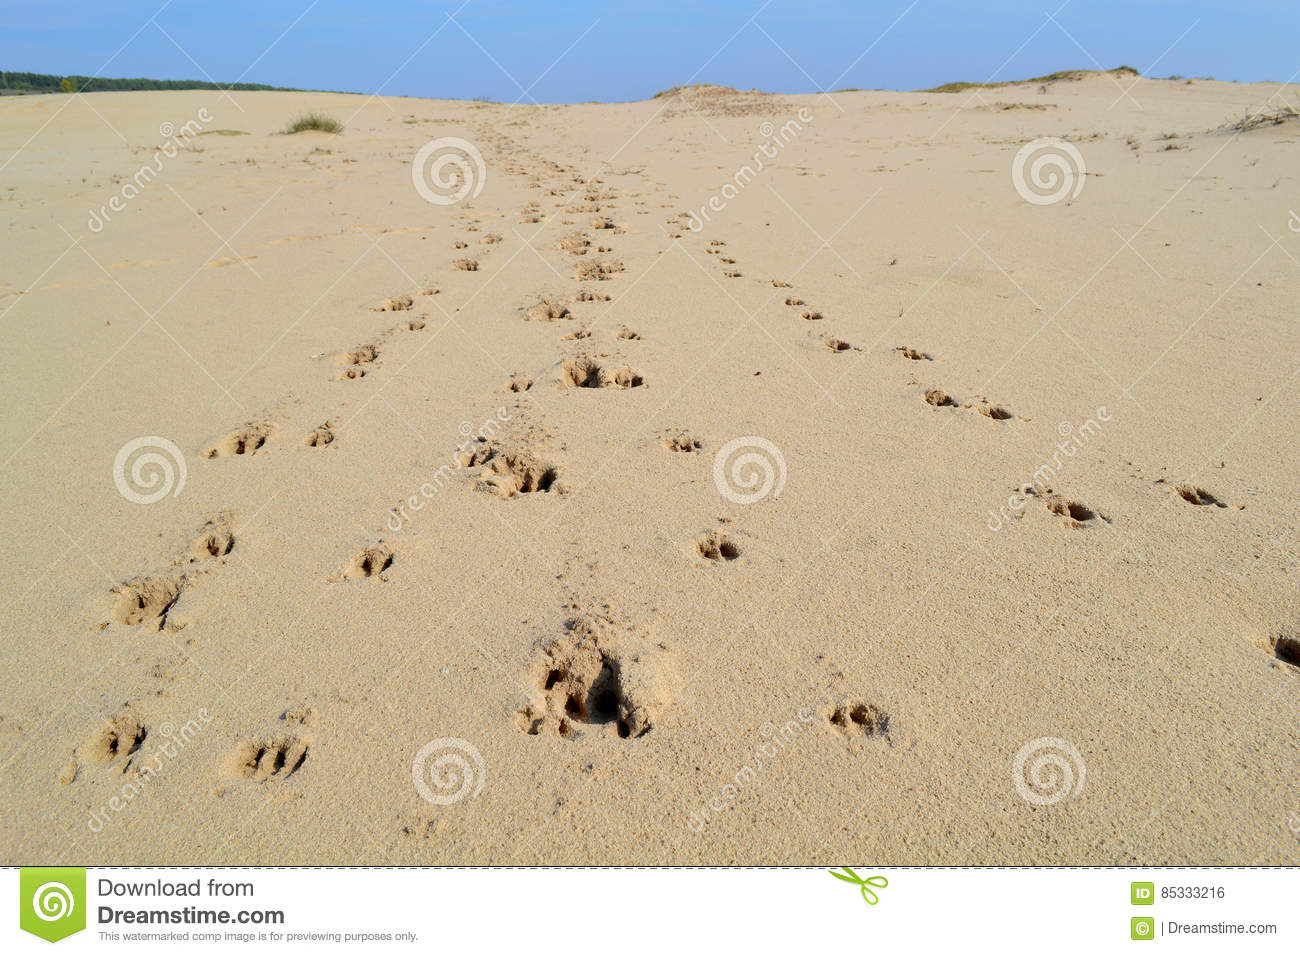 Em Ĵevurá - Página 11 Animal-tracks-desert-lot-sand-footprints-85333216